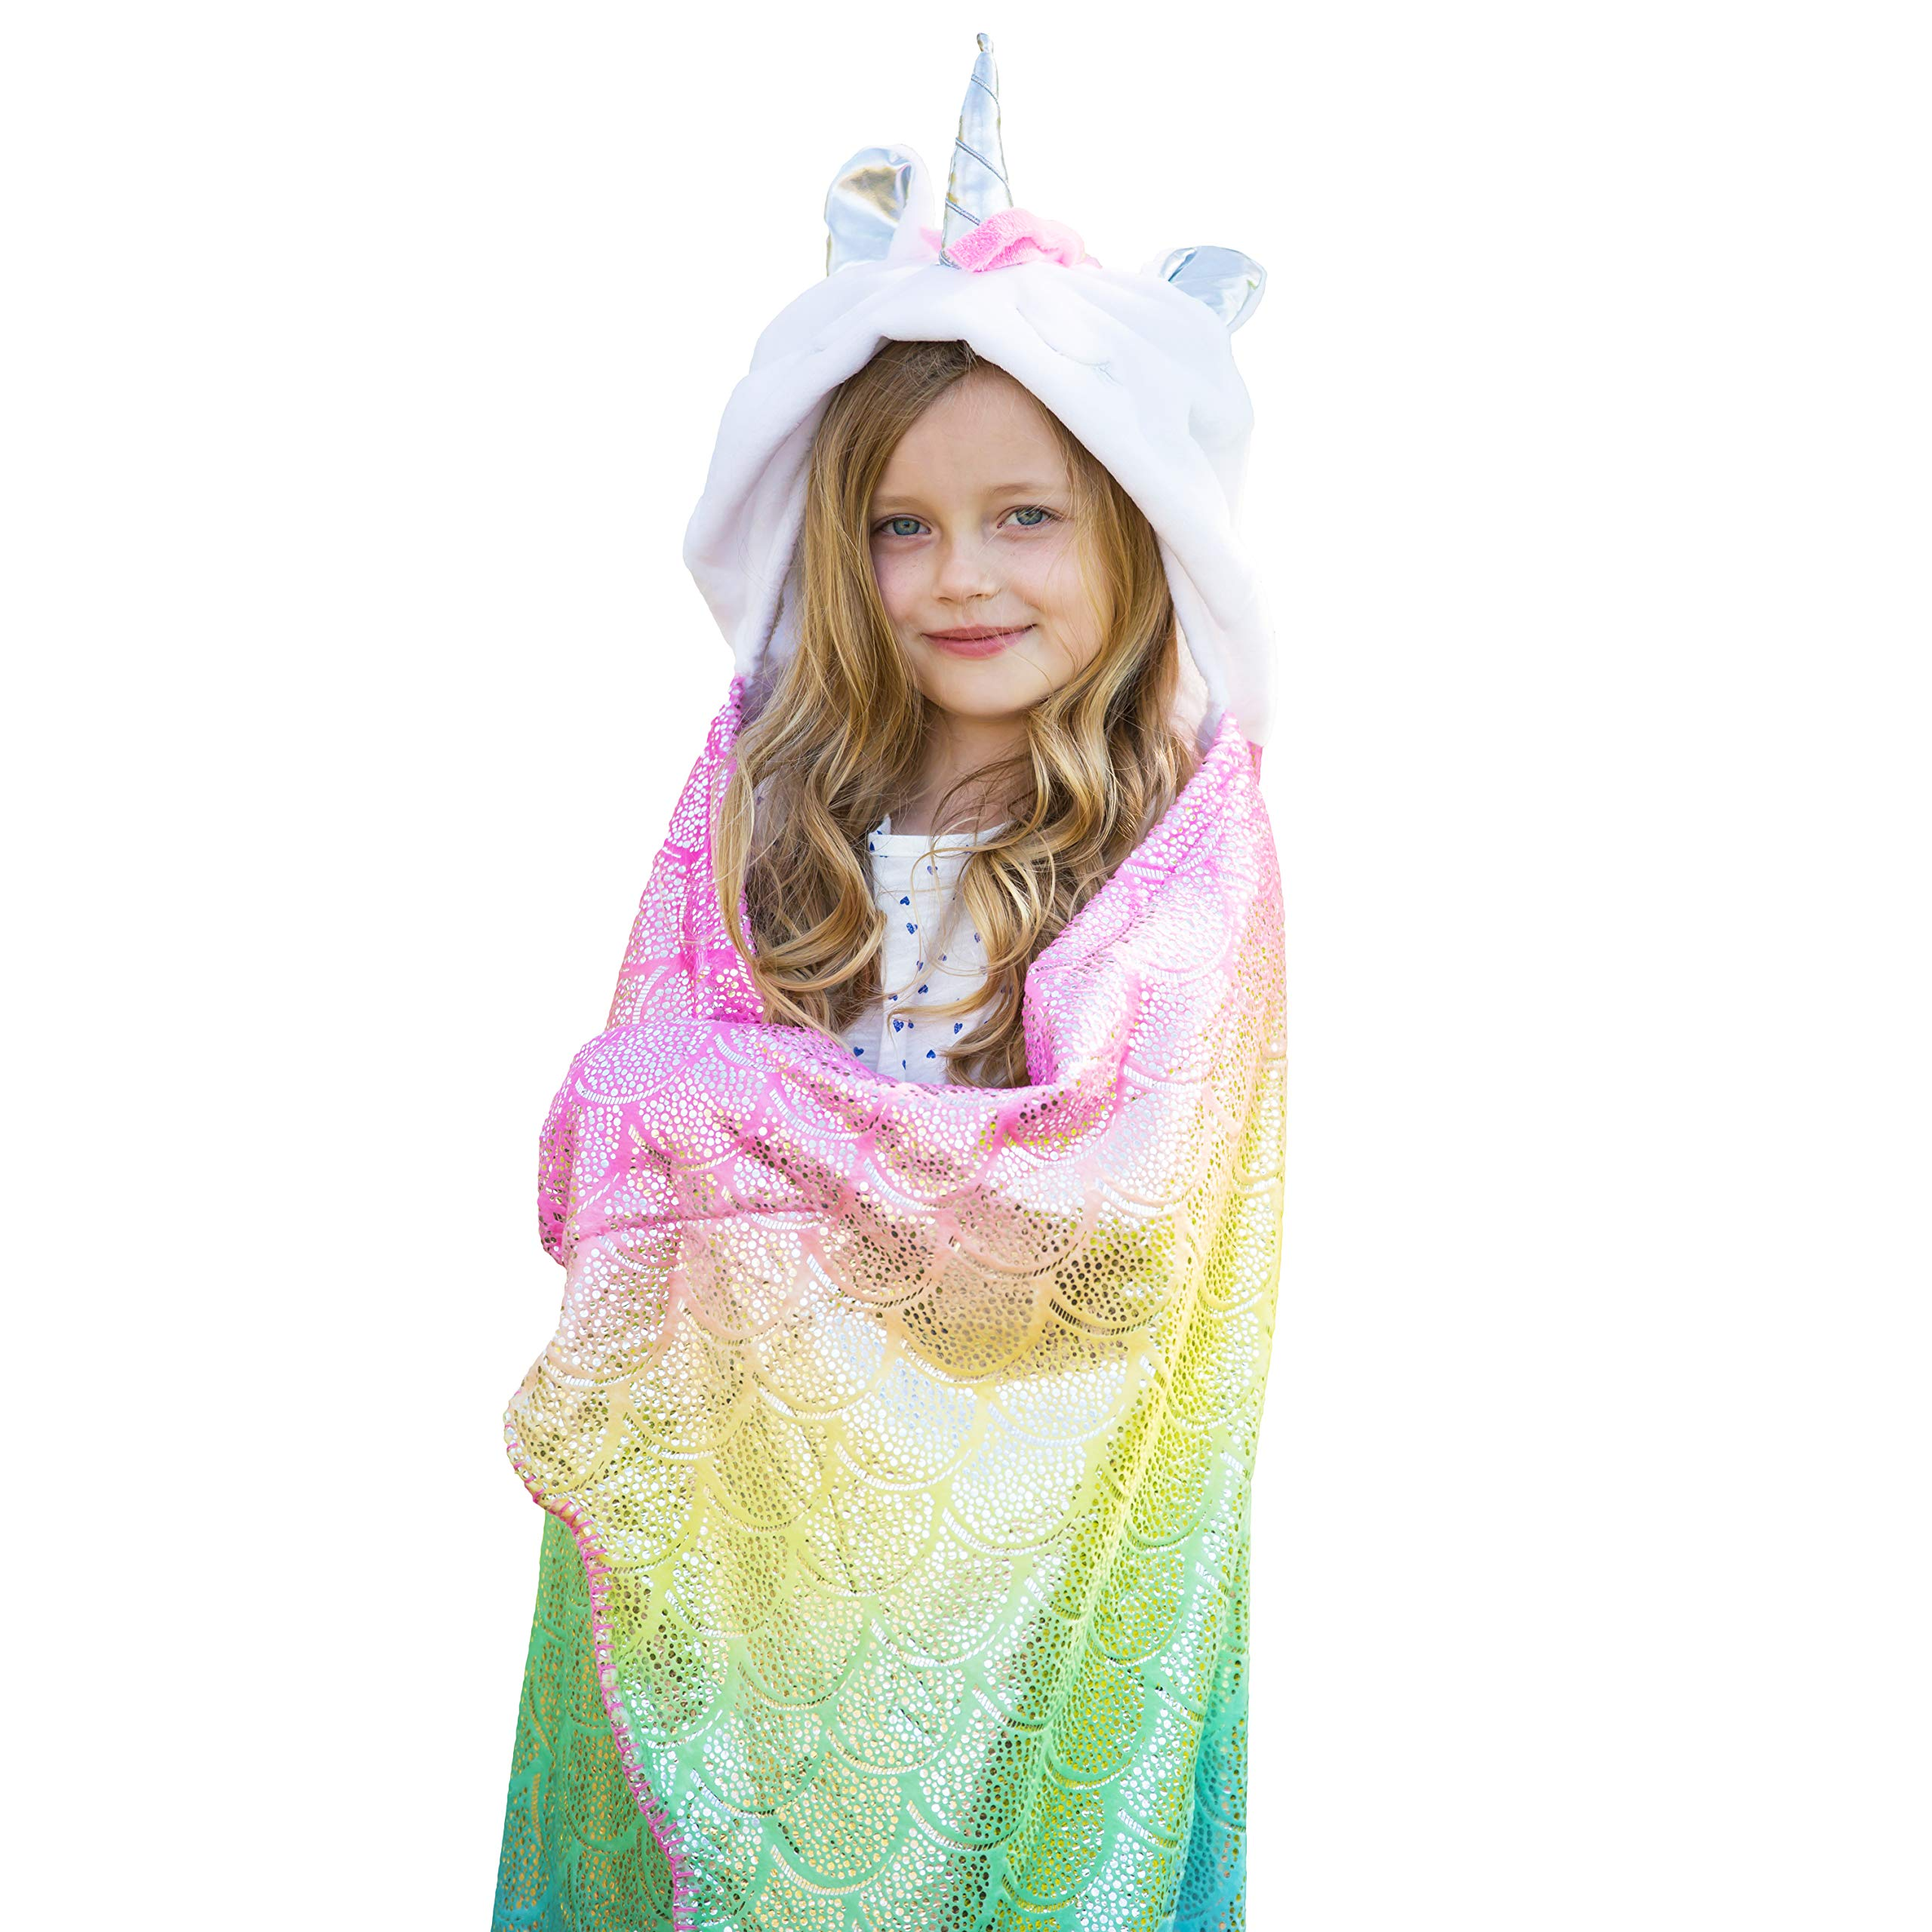 Rainbow Unicorn Blanket For Girls | Hooded Plush Colorful Unicorn Throw Blanket For Kids & Adults | Large Soft Cozy Blanket Wrap With Hood & Shiny Sparkles For Sleep Or Pretend Play | Unicorn Gift